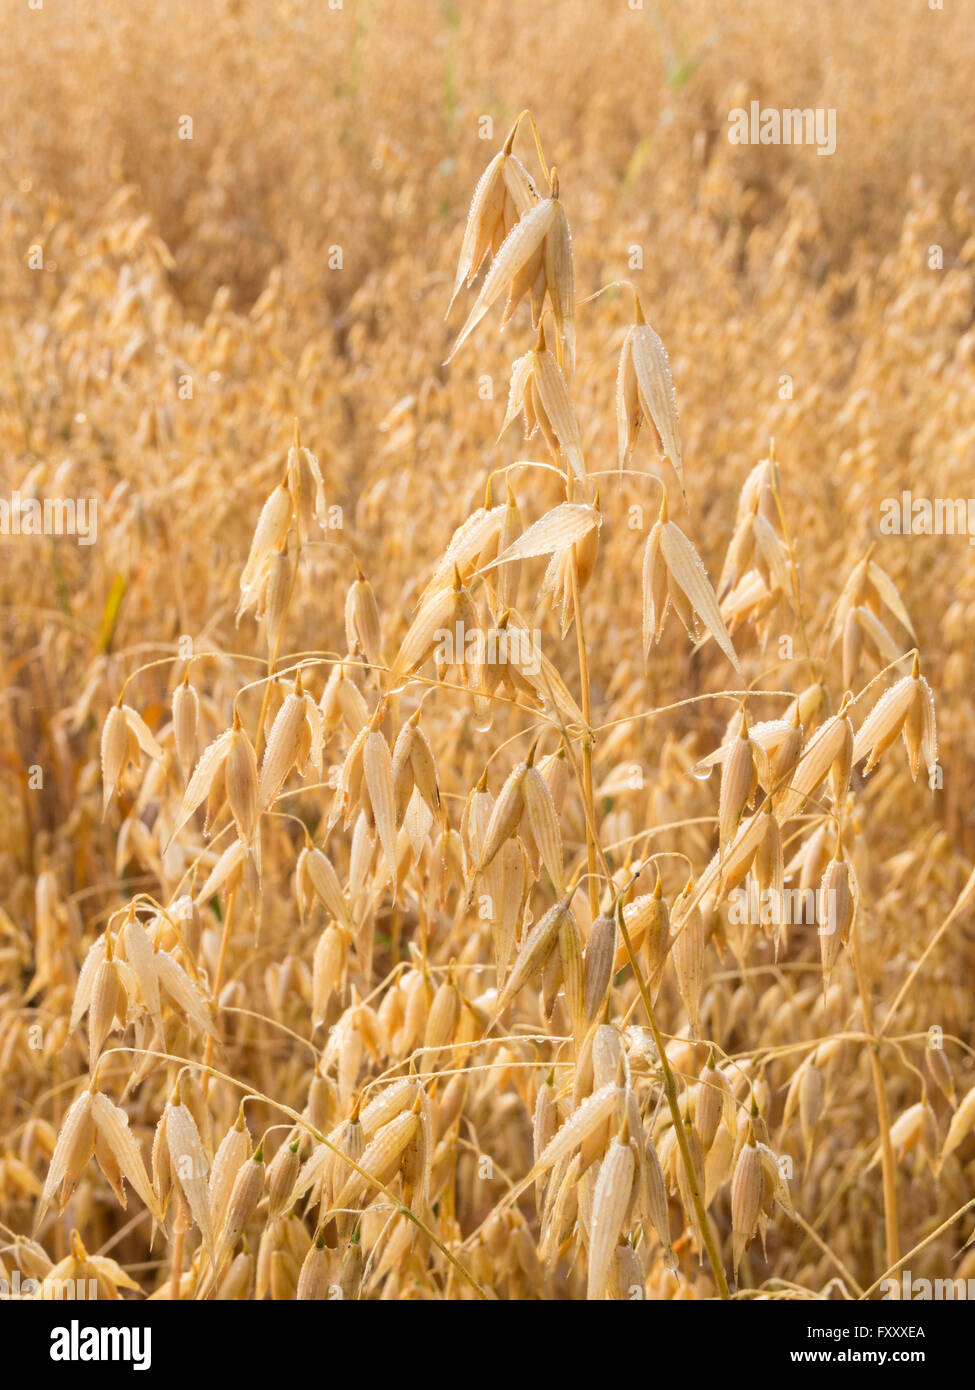 Oat plant with morning dew on an oat field - Stock Image